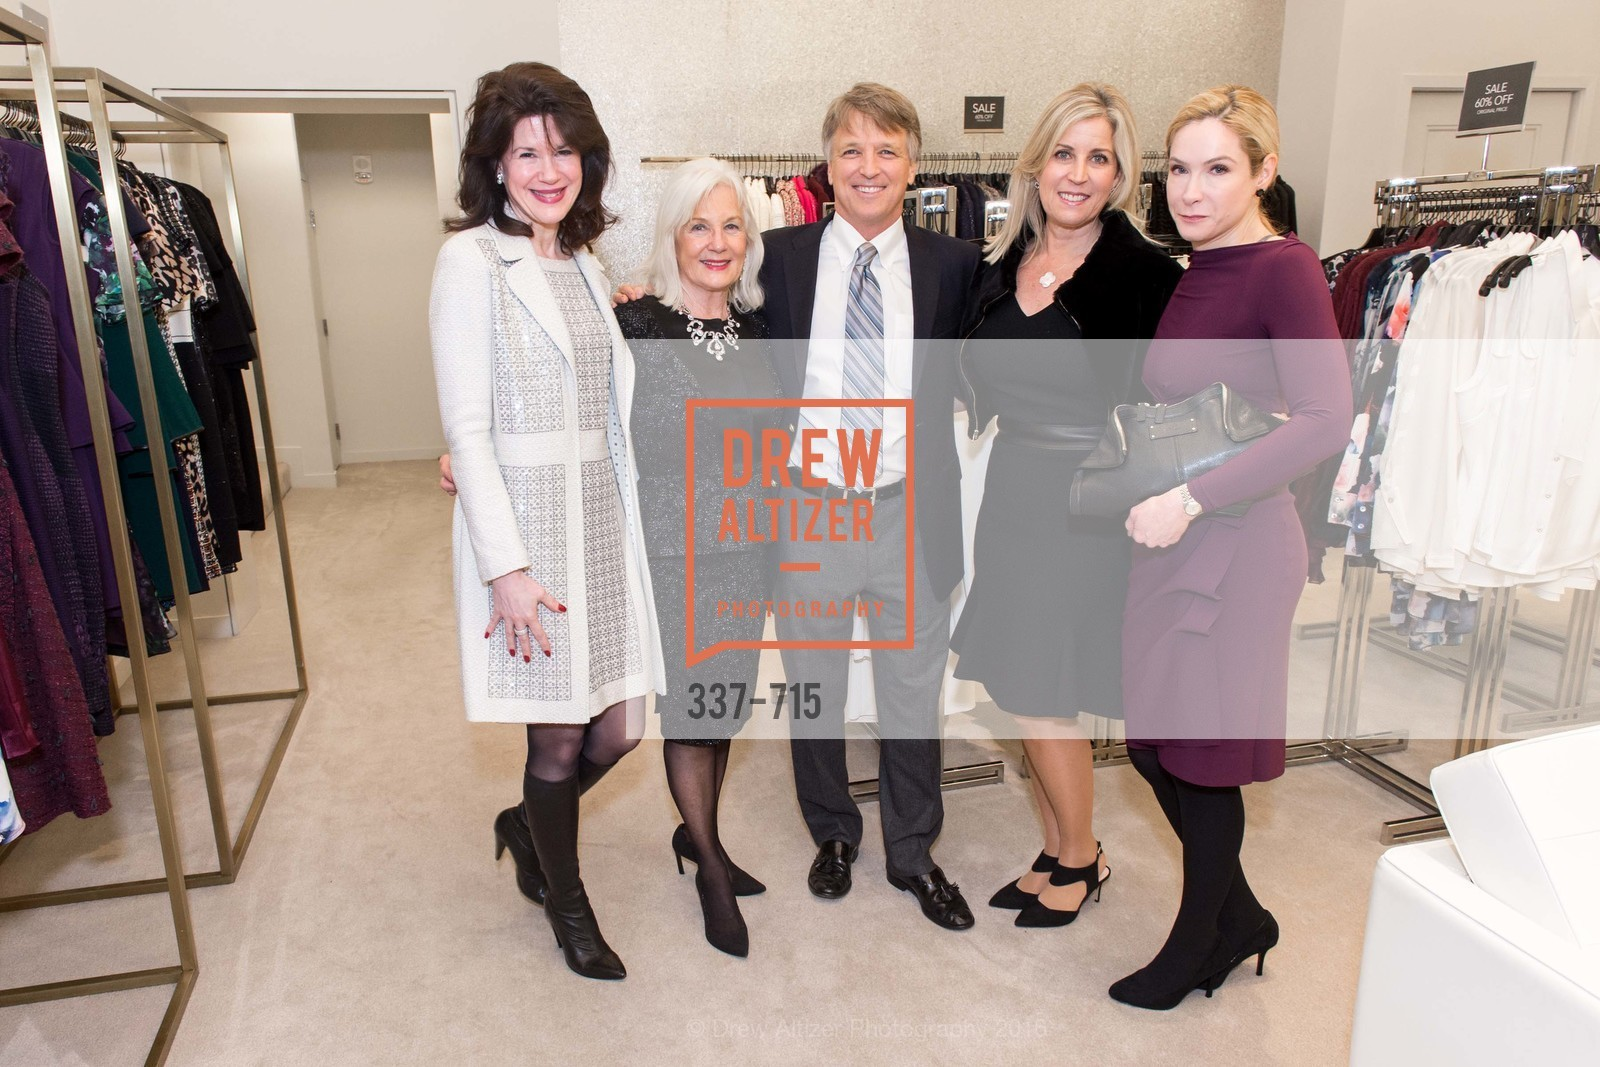 Elaine Mellis, Arlene Inch, Bert Inch, The National Domestic Violence Hotline 20th Anniversary Gala Launch Party, St. John Boutique. 767 Market St, January 20th, 2016,Drew Altizer, Drew Altizer Photography, full-service agency, private events, San Francisco photographer, photographer california